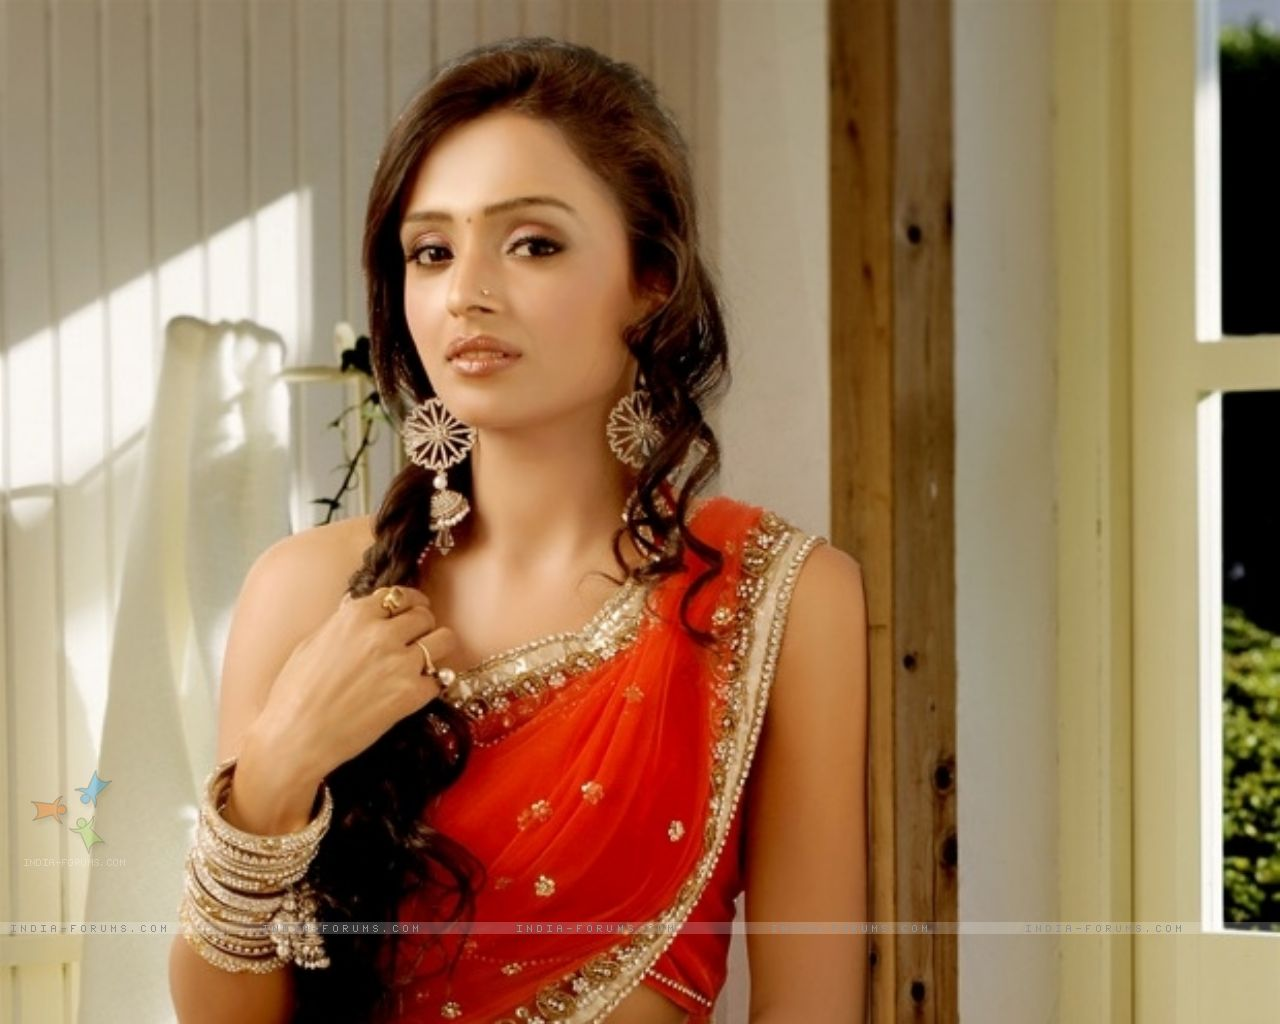 Watch Parul Chauhan video